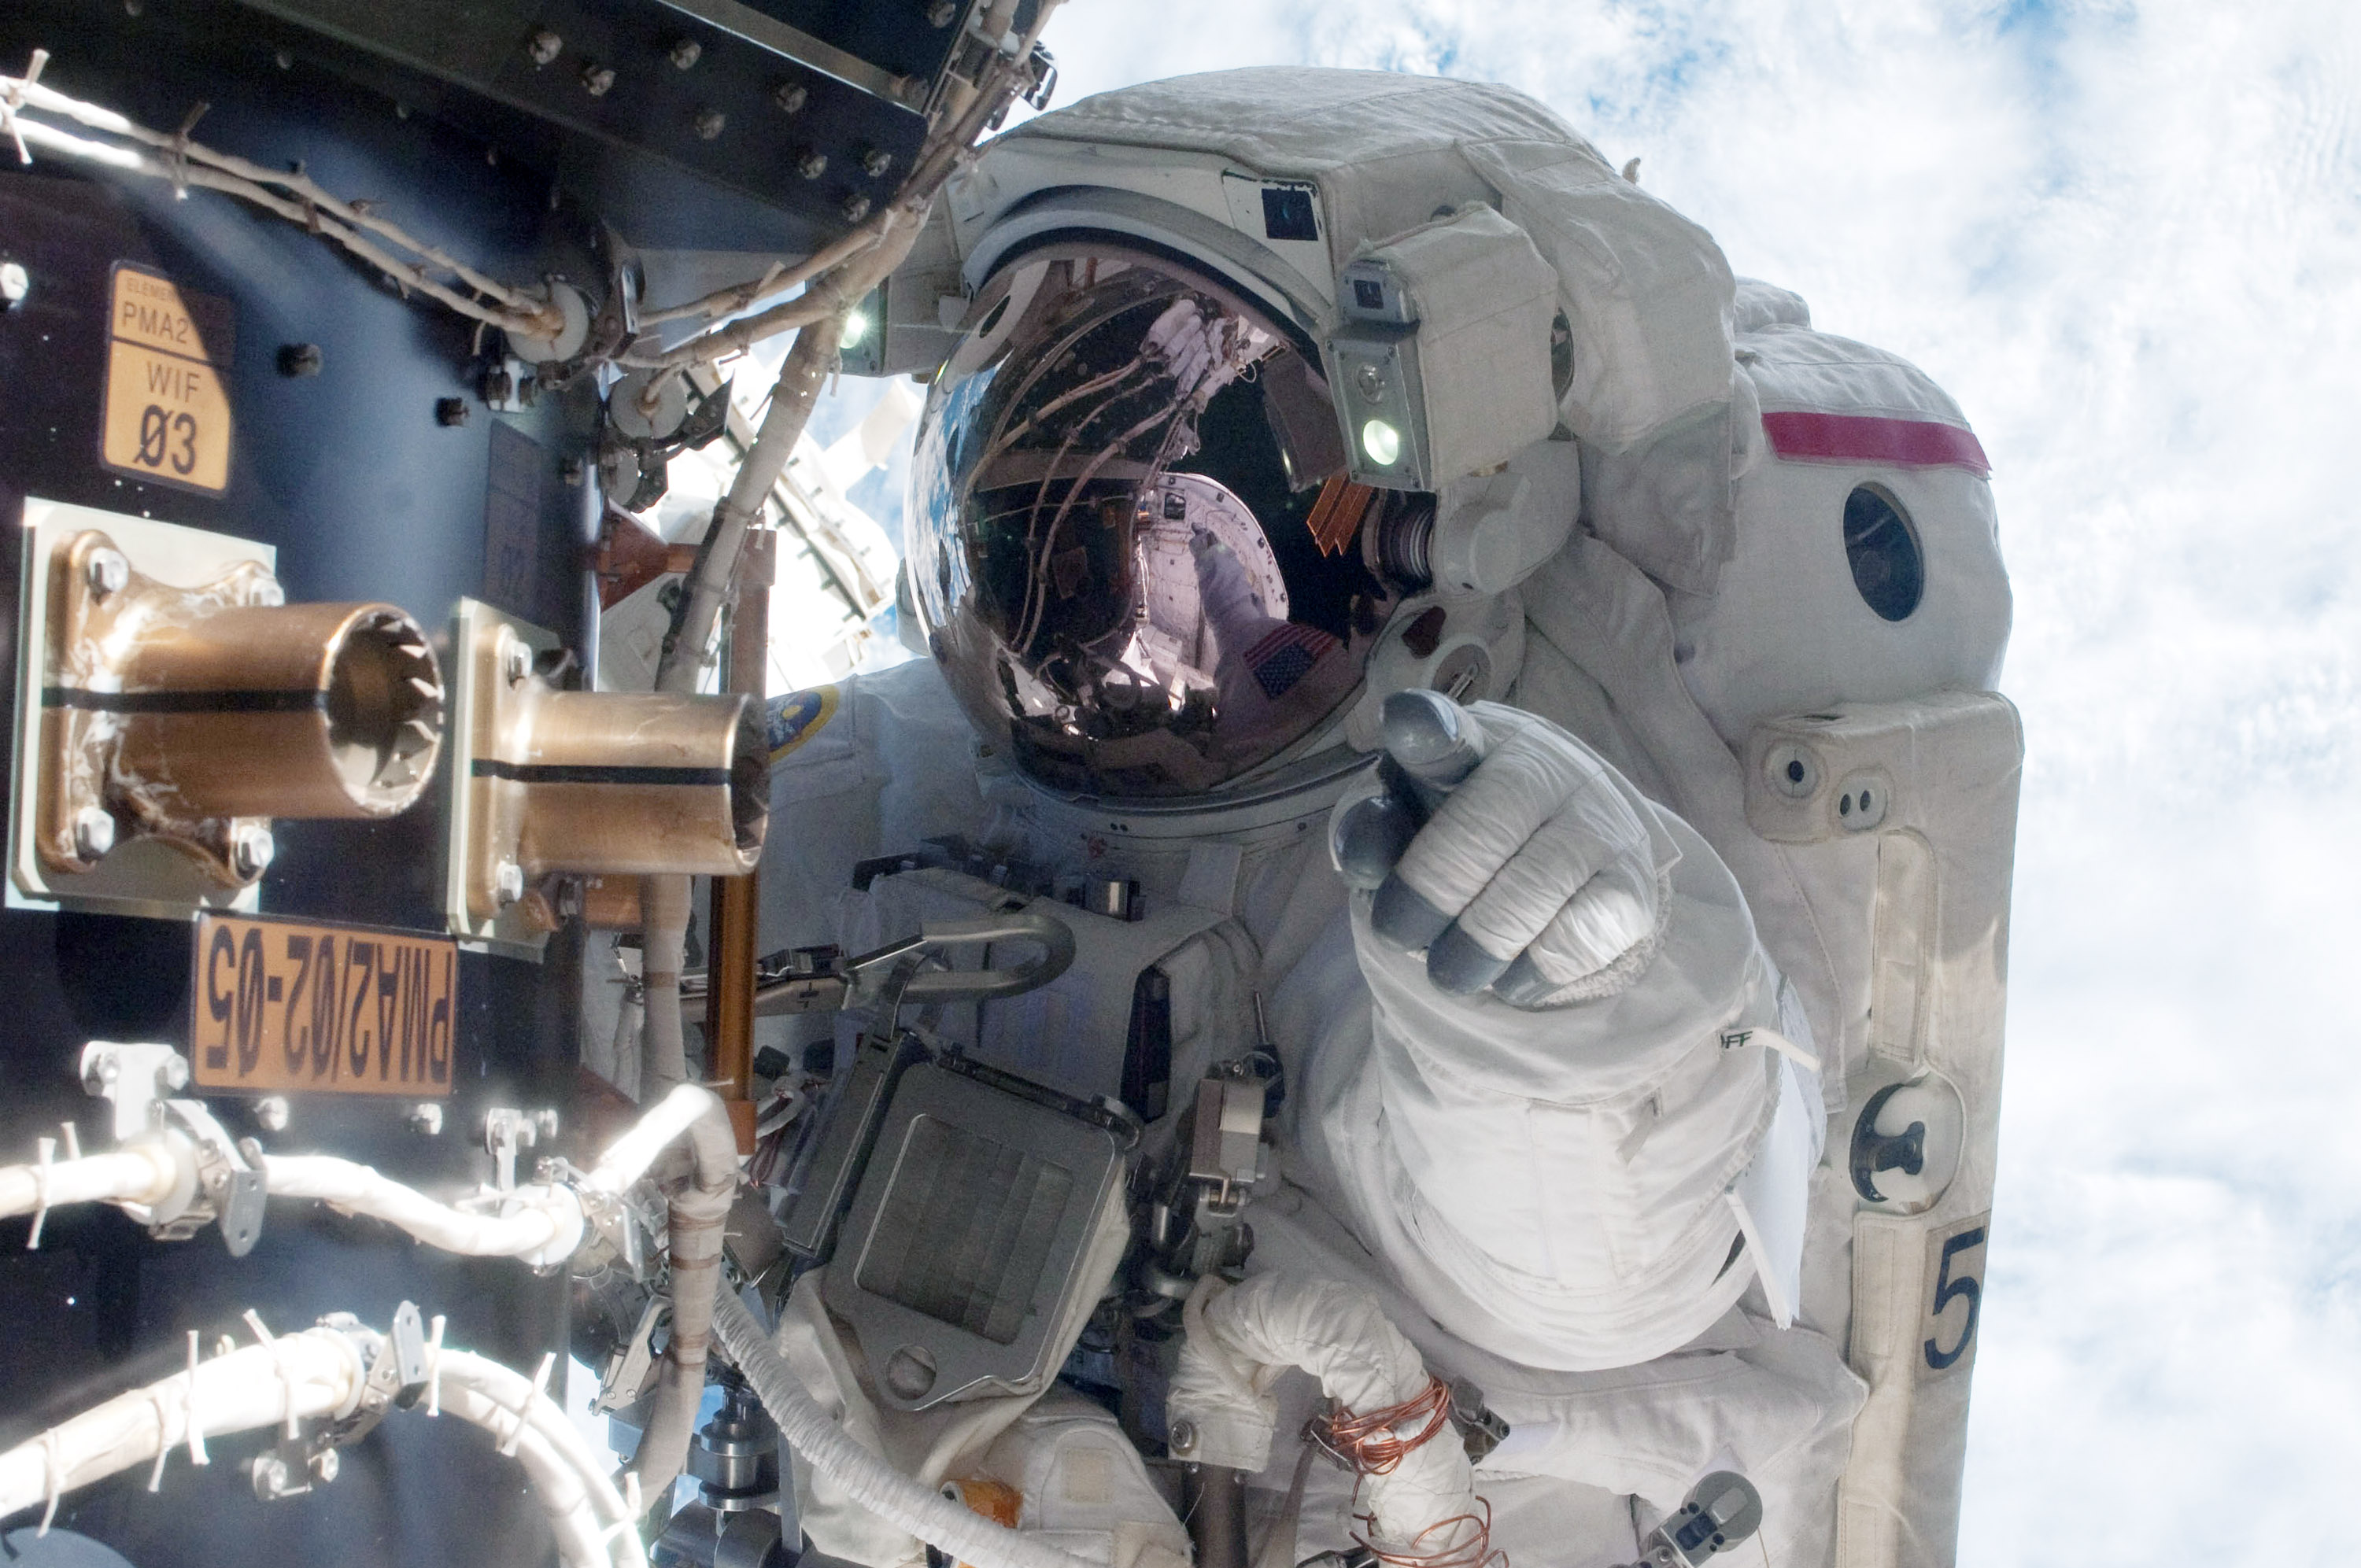 NASA Laptop Stolen With Command Codes That Control Space Station